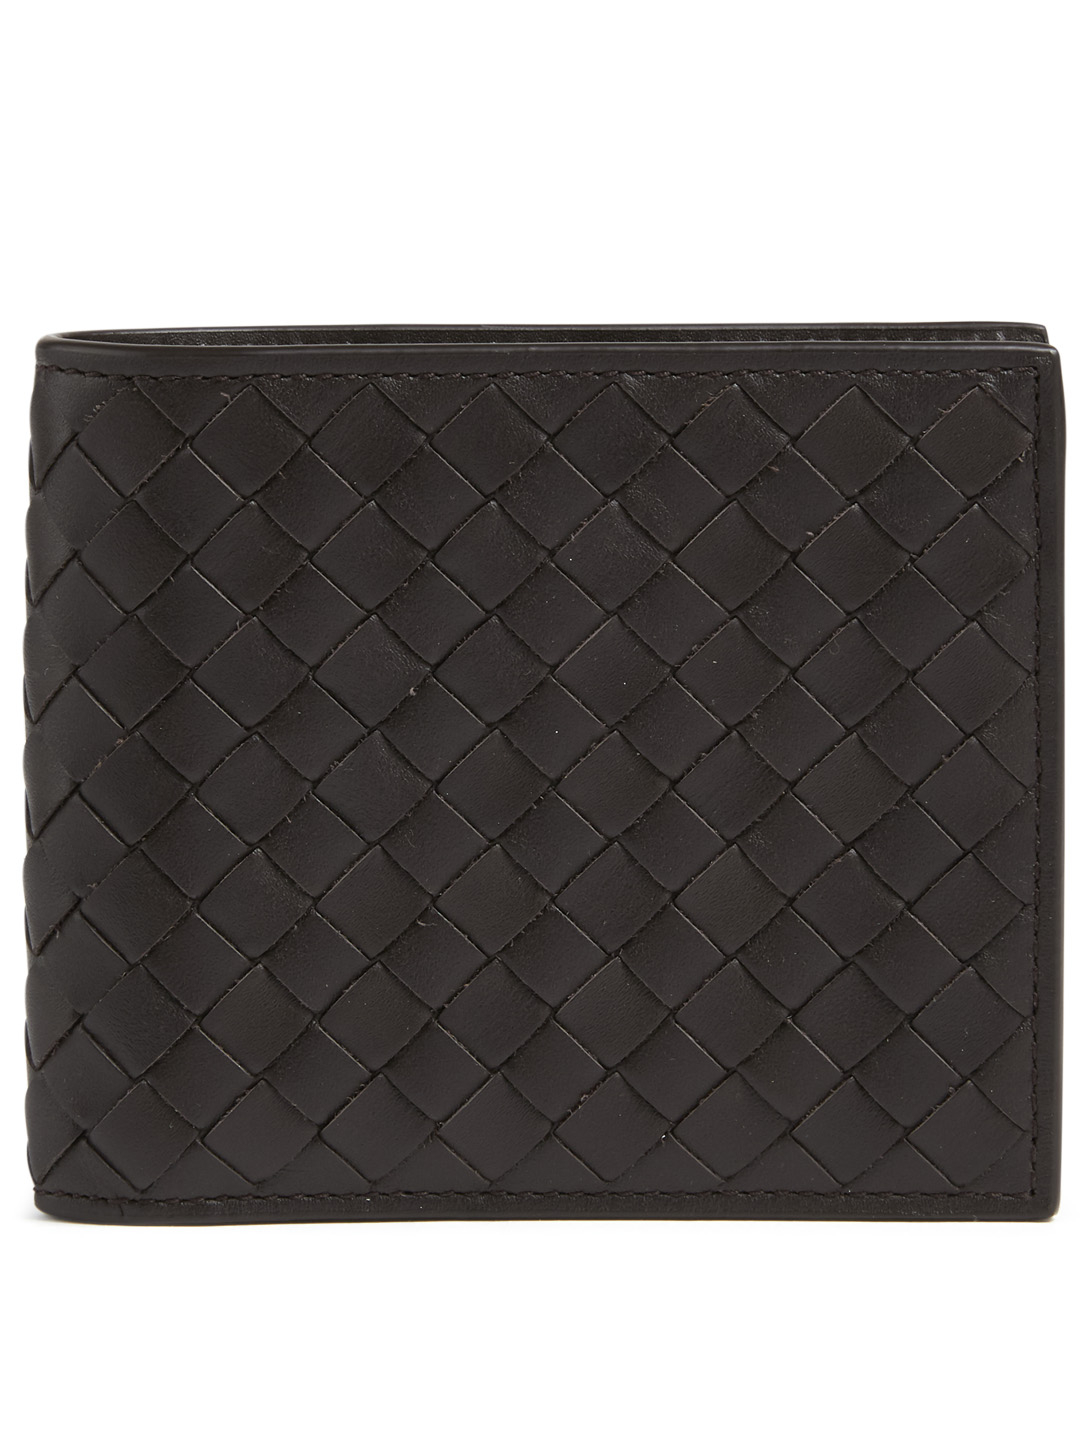 BOTTEGA VENETA Intrecciato Leather Bifold Wallet Men's Brown